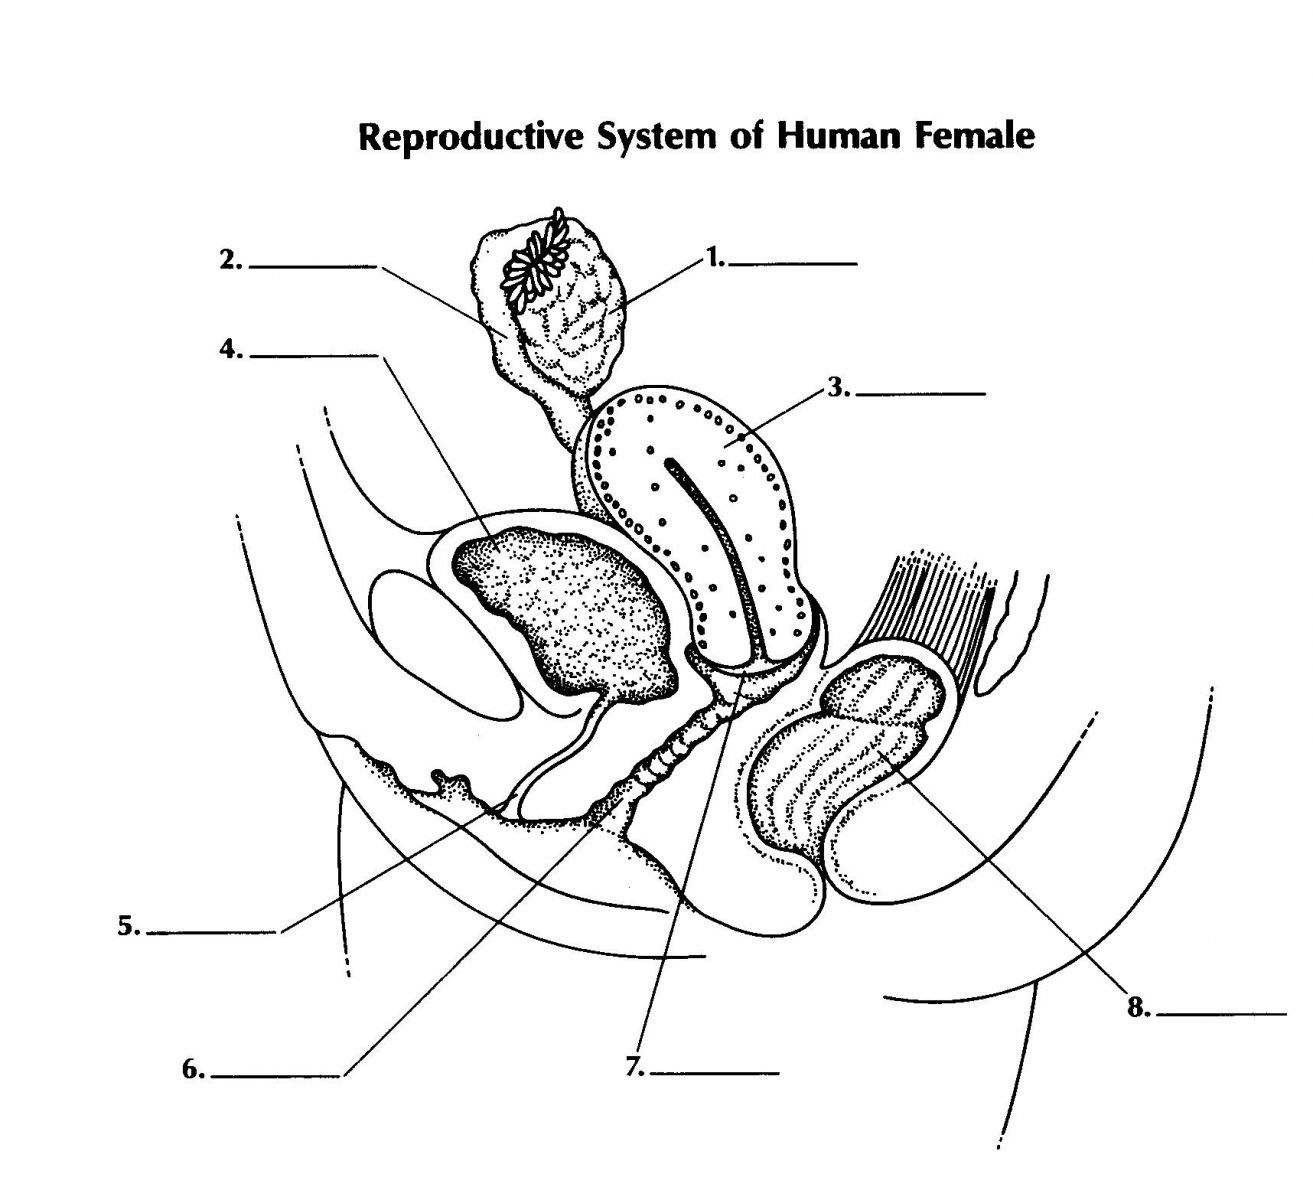 Female Reproductive System Diagram Unlabeled Elegant Female Reproductive System Diag In 2020 Female Reproductive Anatomy Female Reproductive System Reproductive System